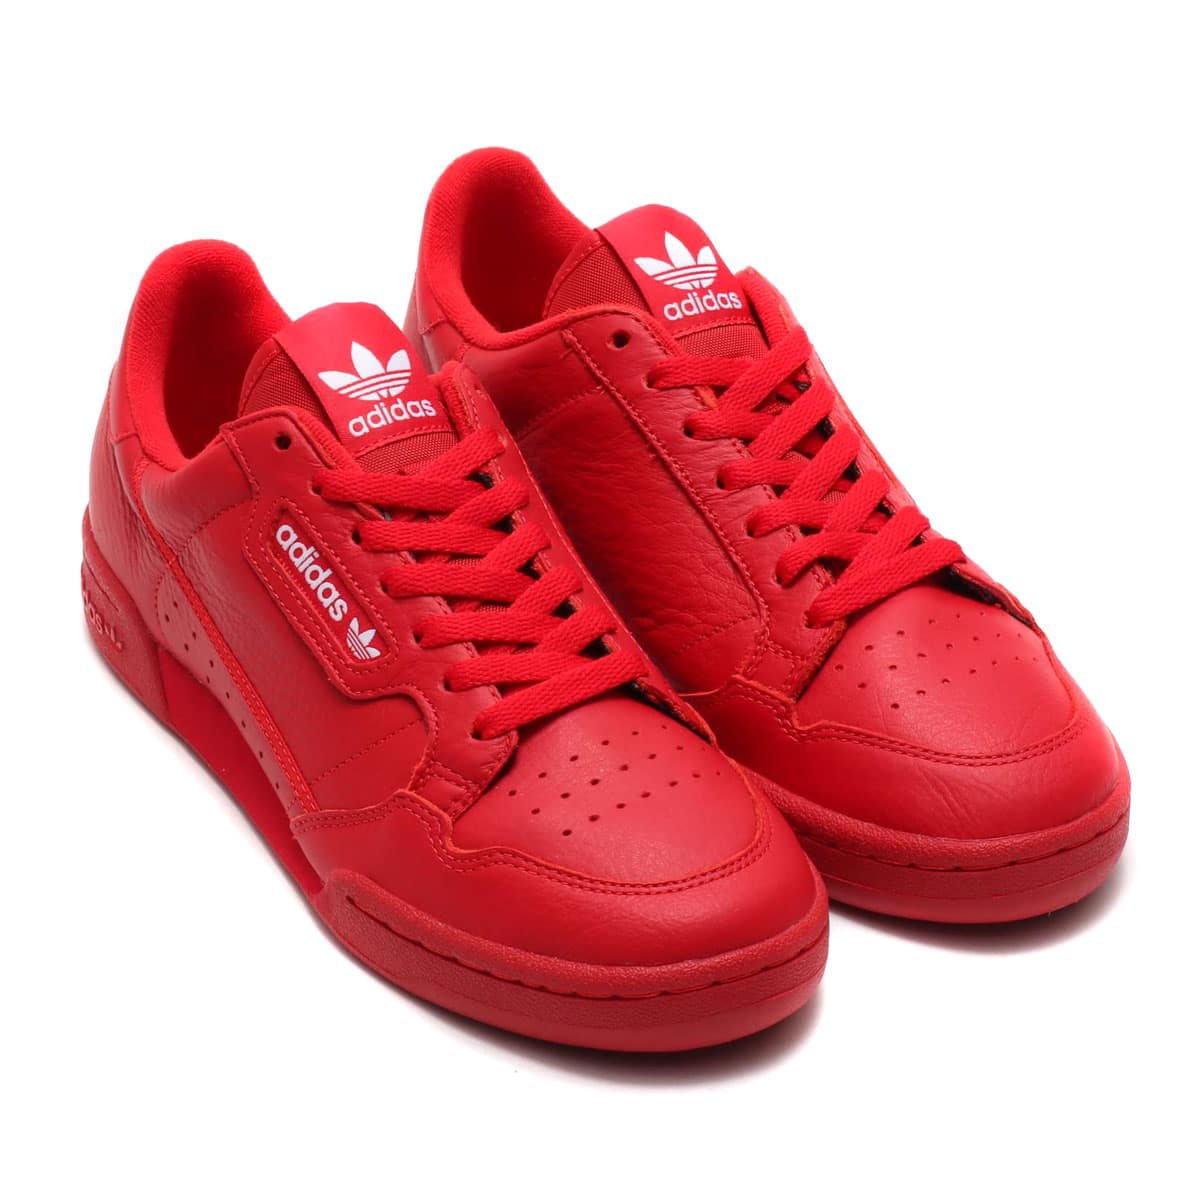 adidas Originals CONTINENTAL 80 ATMOS SCARLET/SCARLET/SCARLET 19SS-I_photo_large